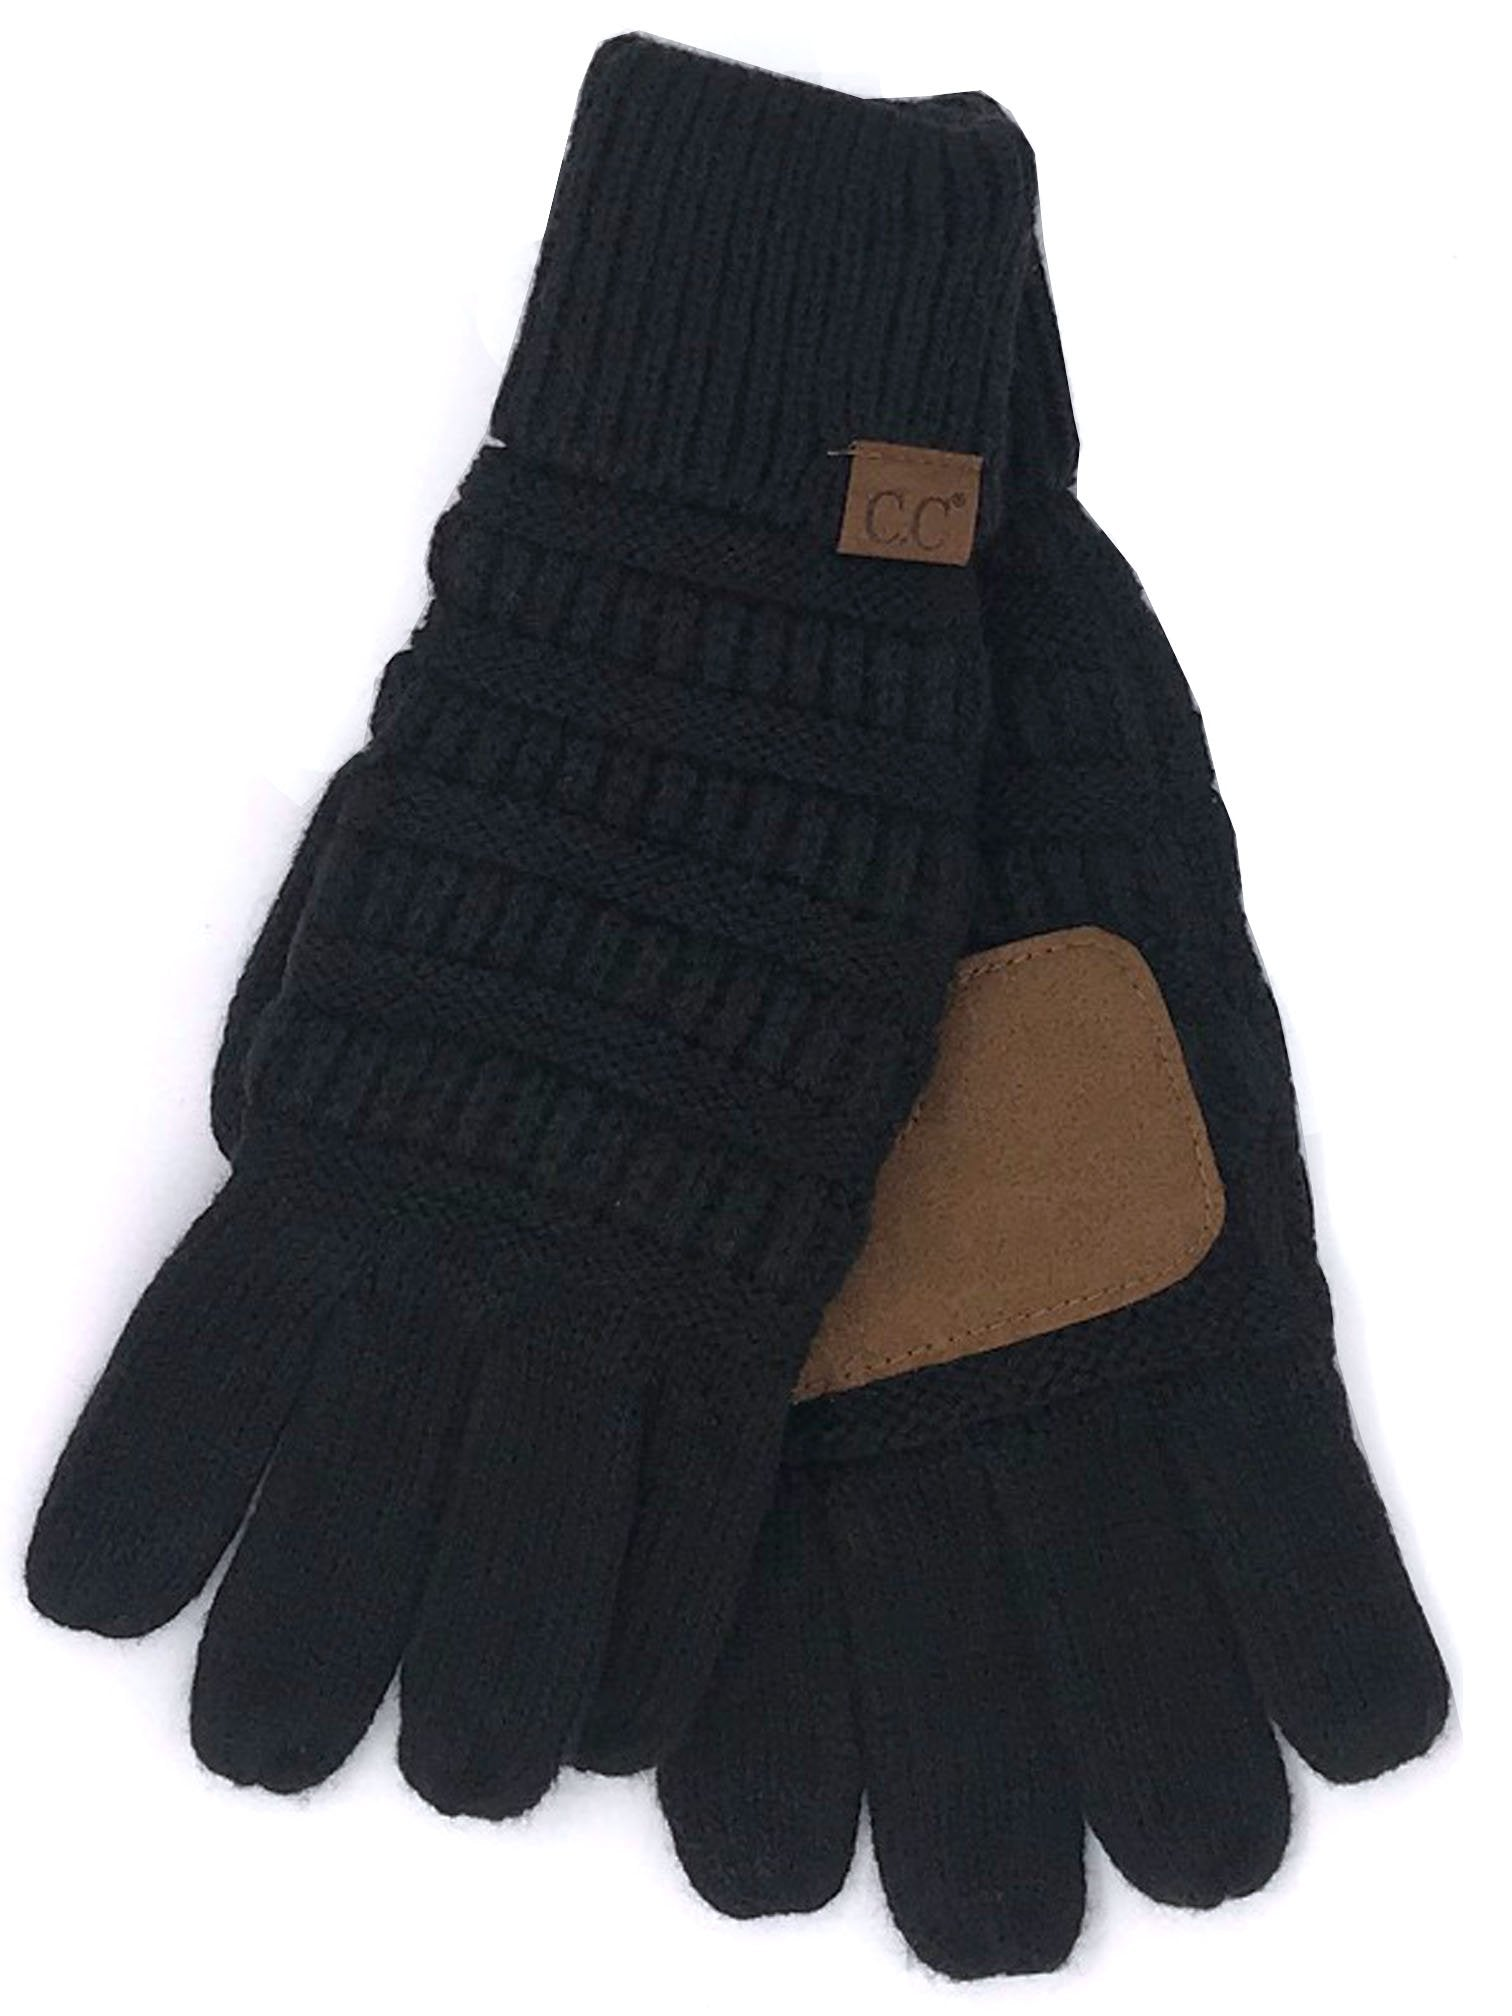 C.C G-20 Black Gloves